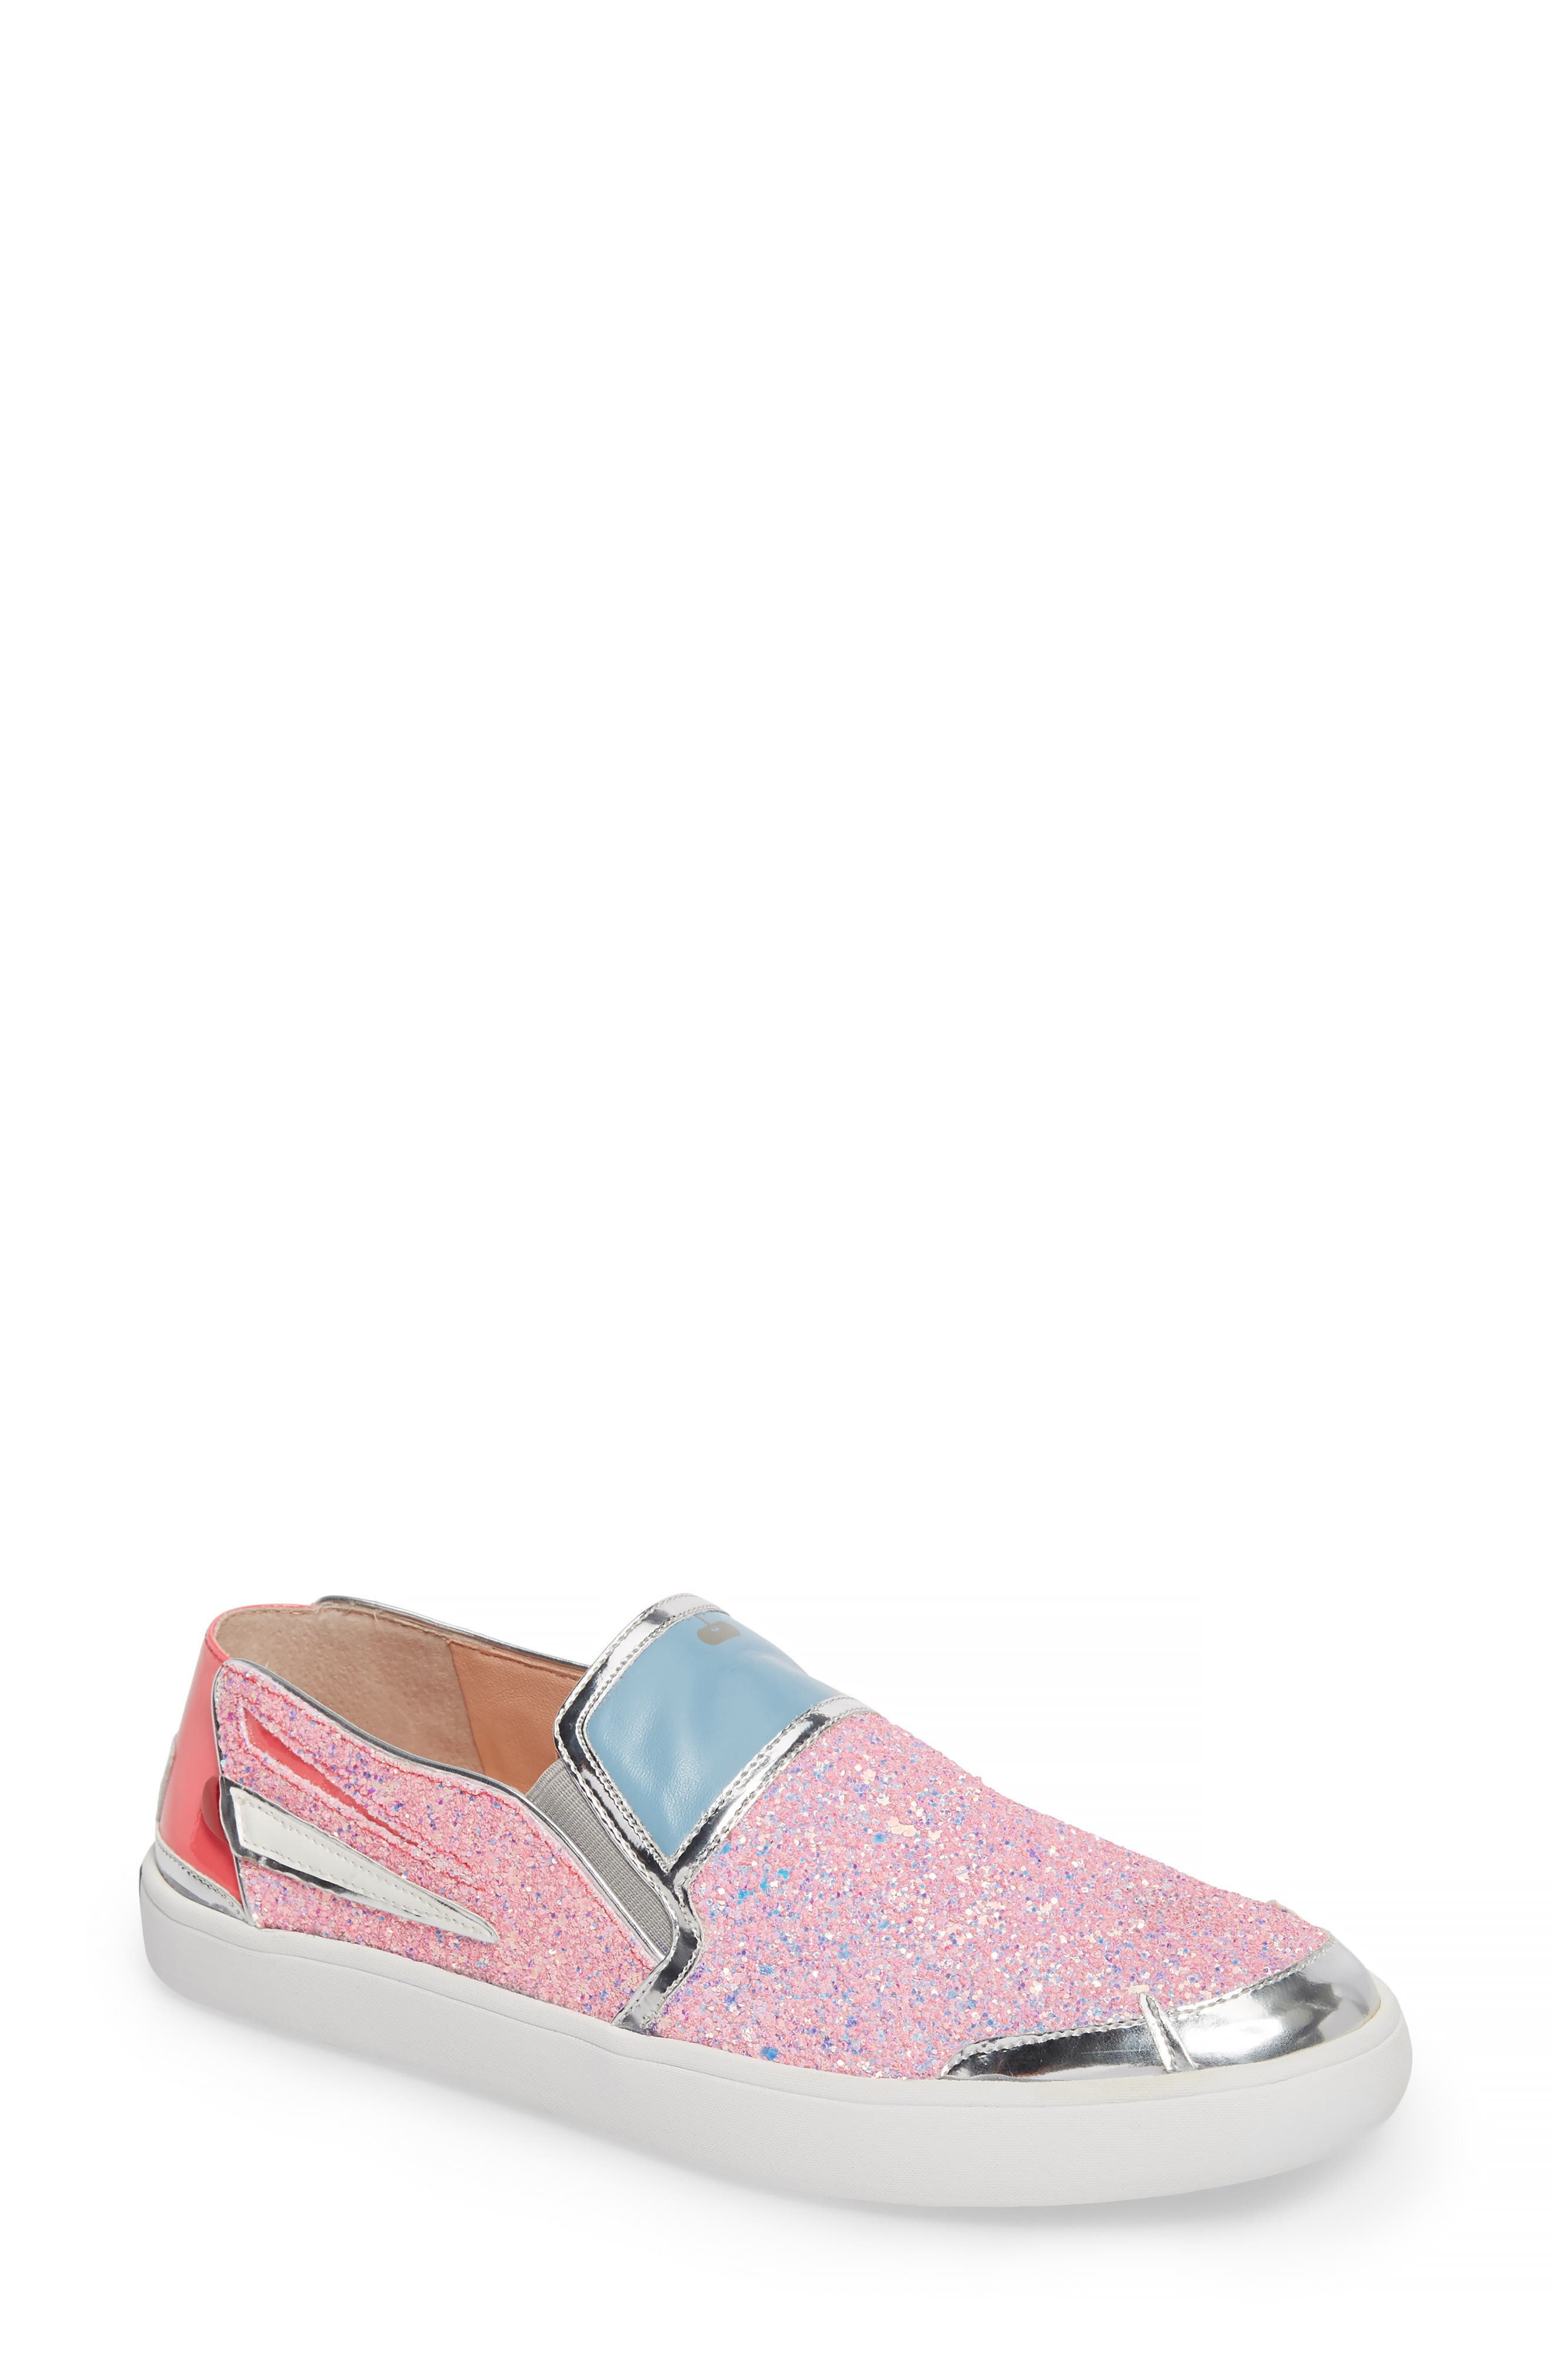 Lotus Slip-On Sneaker,                             Main thumbnail 1, color,                             Pink